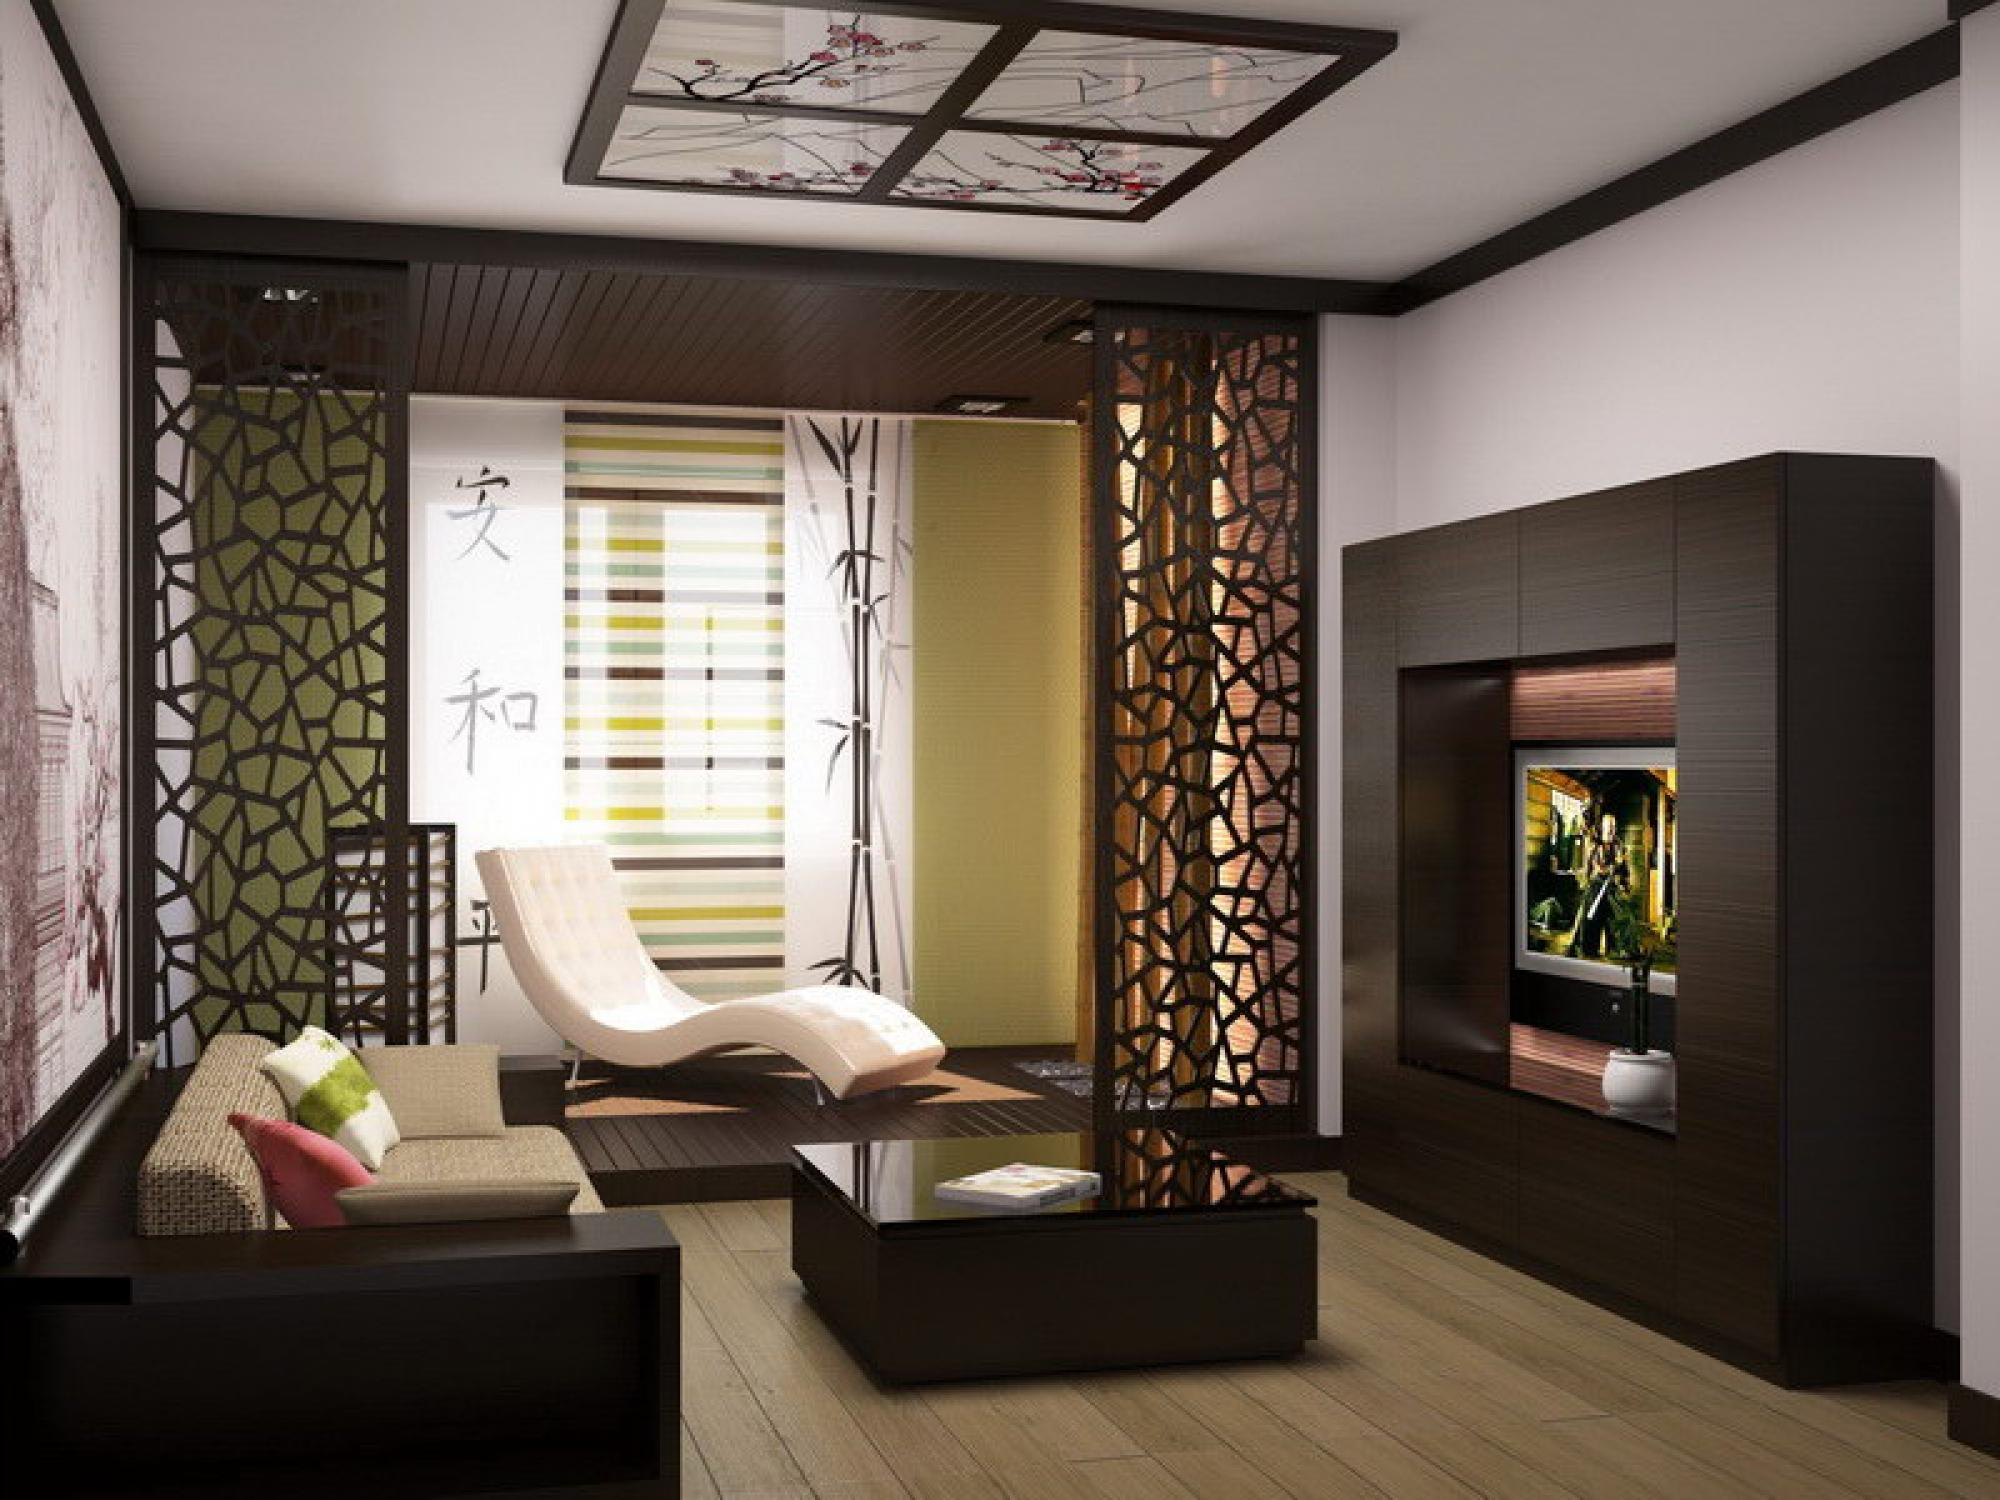 Home hall and dining partition - Stunning Partition Wall Design Living Room Pictures 3d House